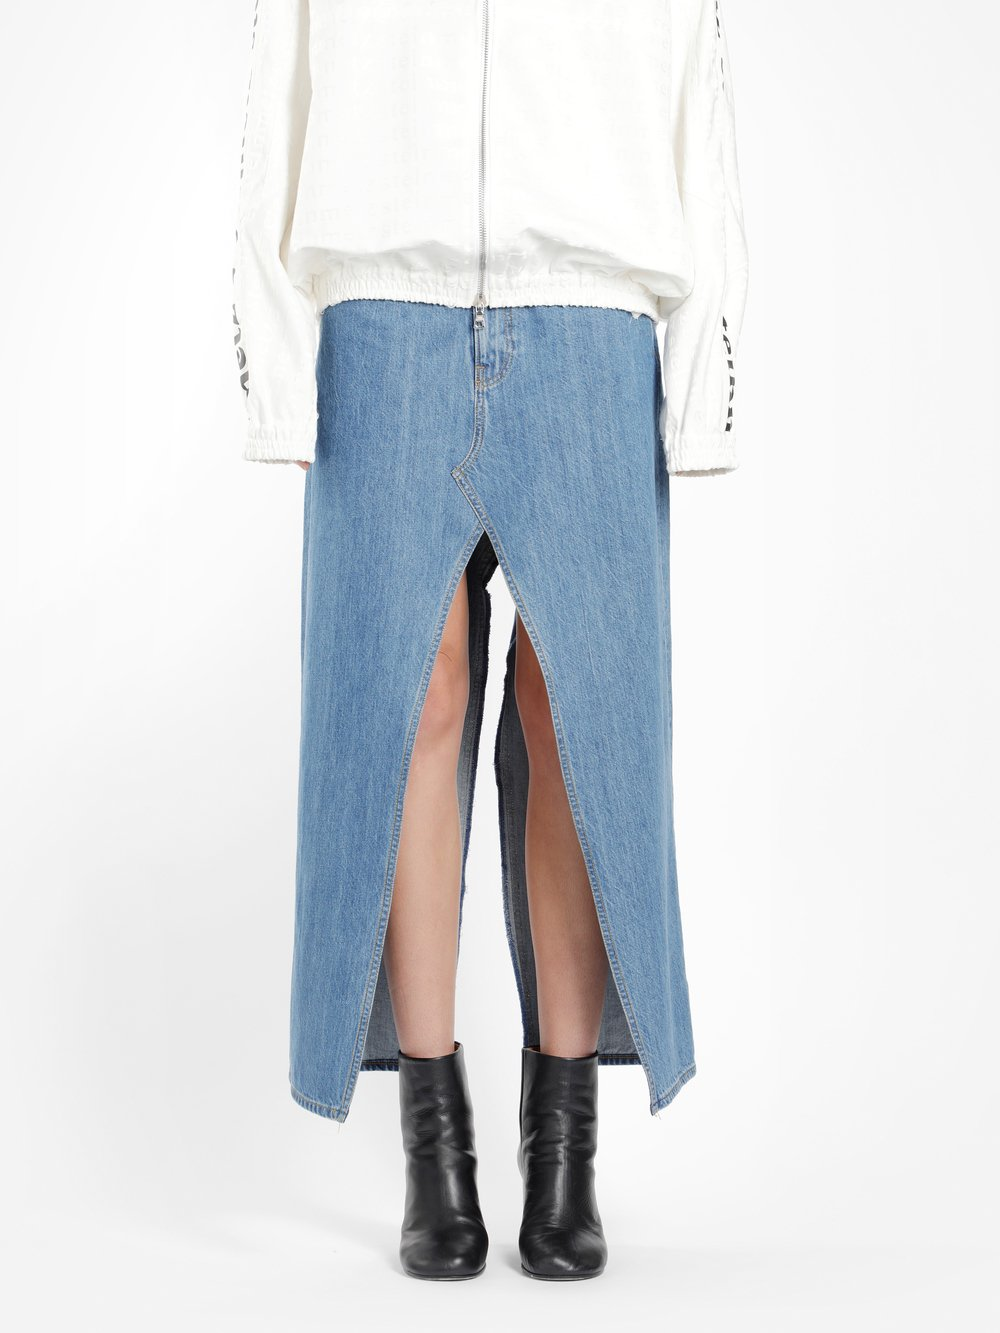 FAUSTINE STEINMETZ WOMEN'S BLUE RECYCLED DENIM SKIRT